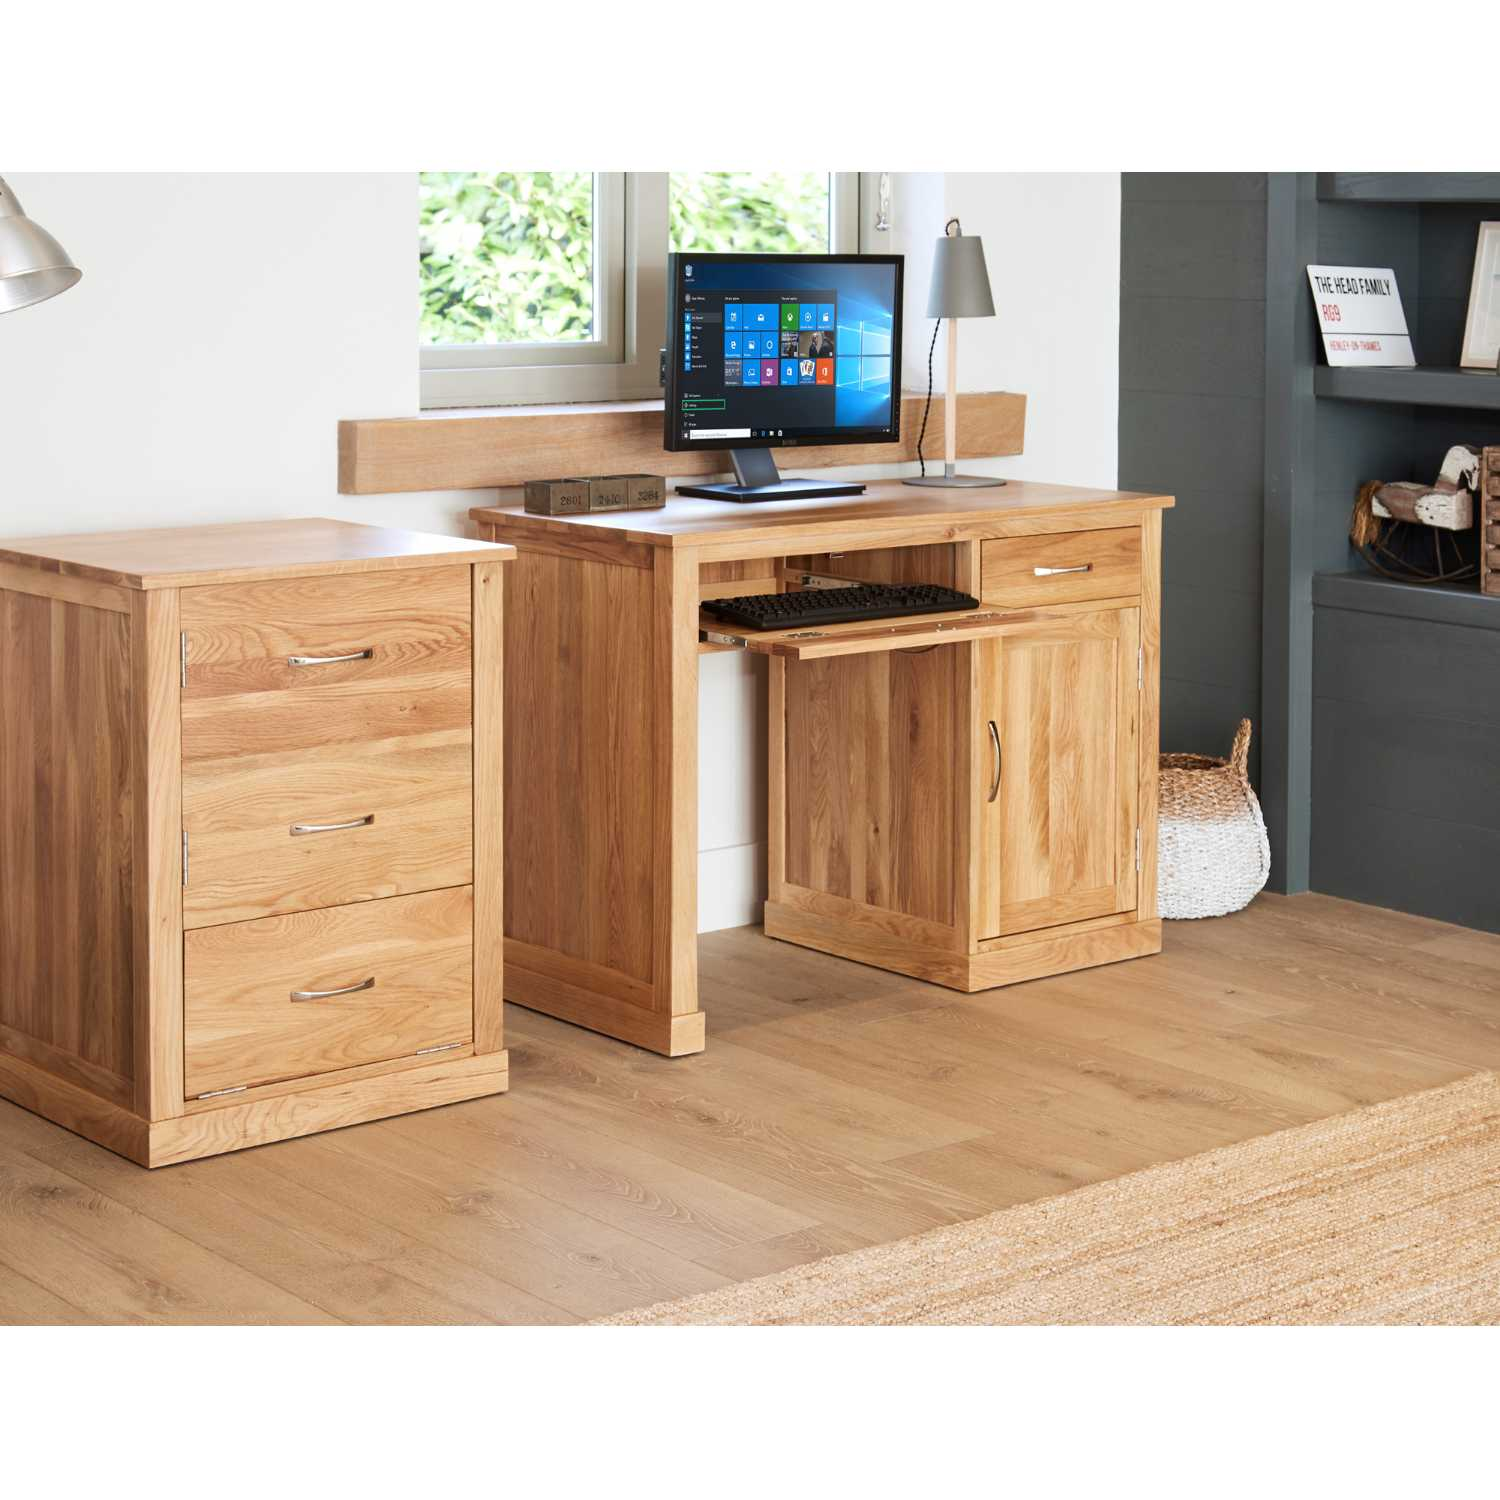 Solid Light Oak Single Pedestal Computer Desk With Keyboard Tray Cupboard and Drawer